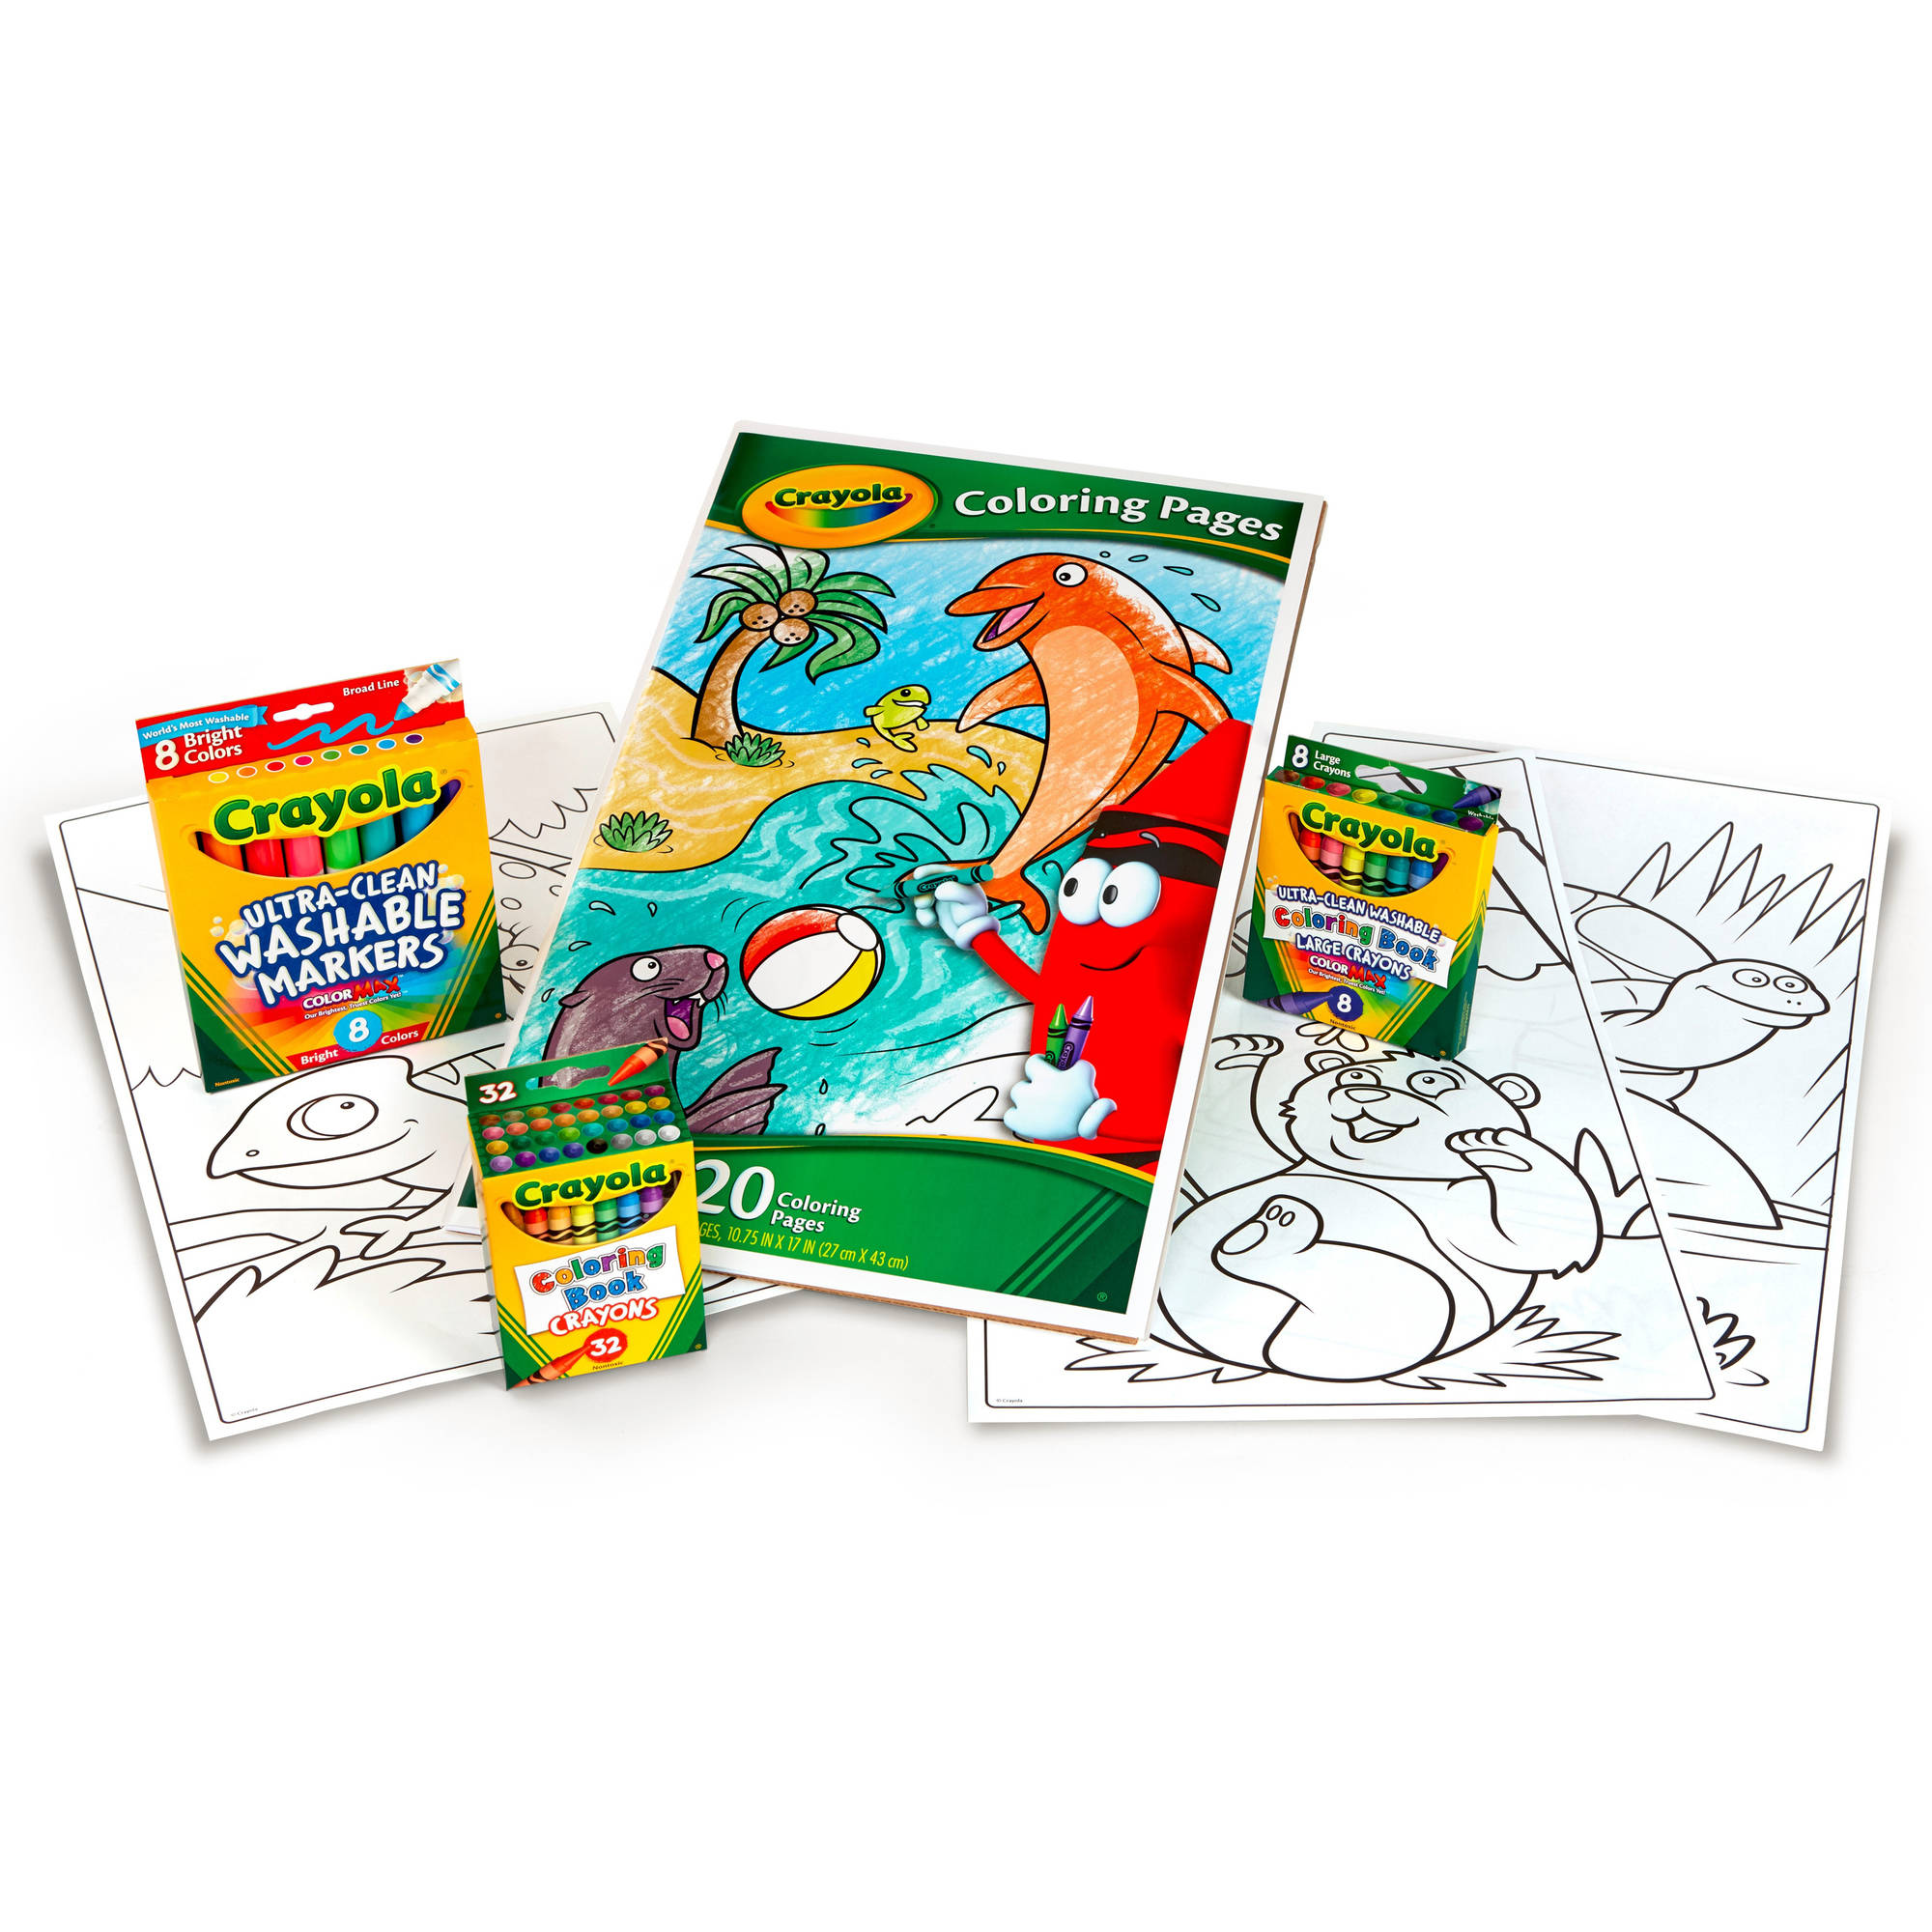 Crayola Giant Coloring Pages Art Kit - Walmart.com ...